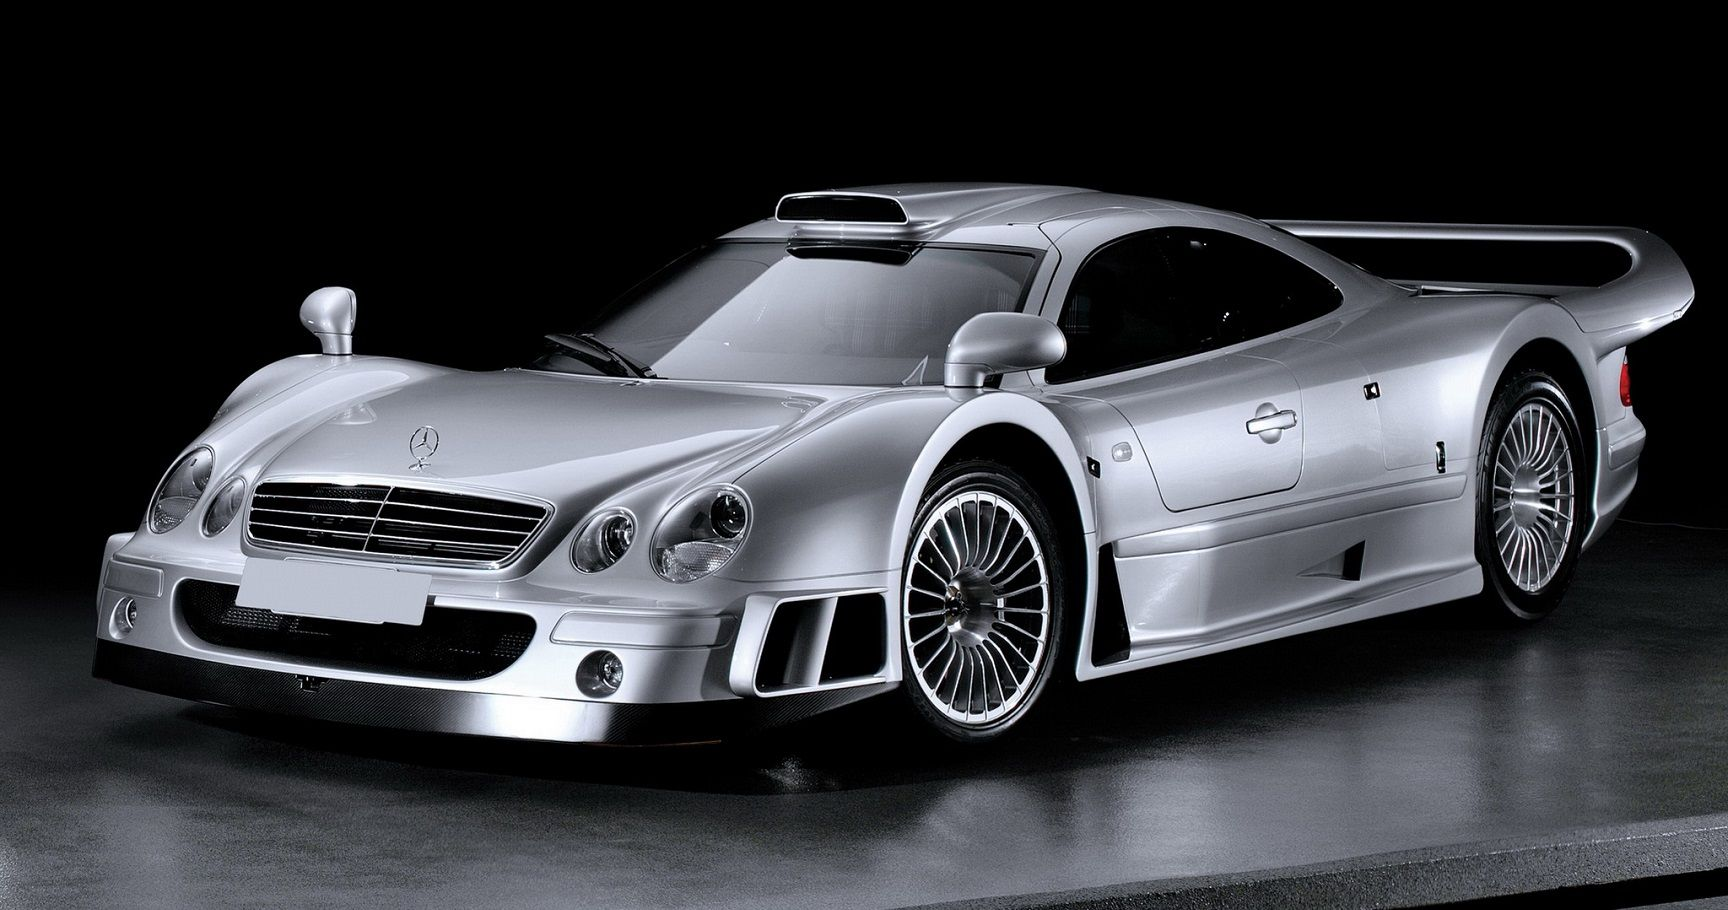 The 10 Fastest Mercedes-Benz Models of All Time